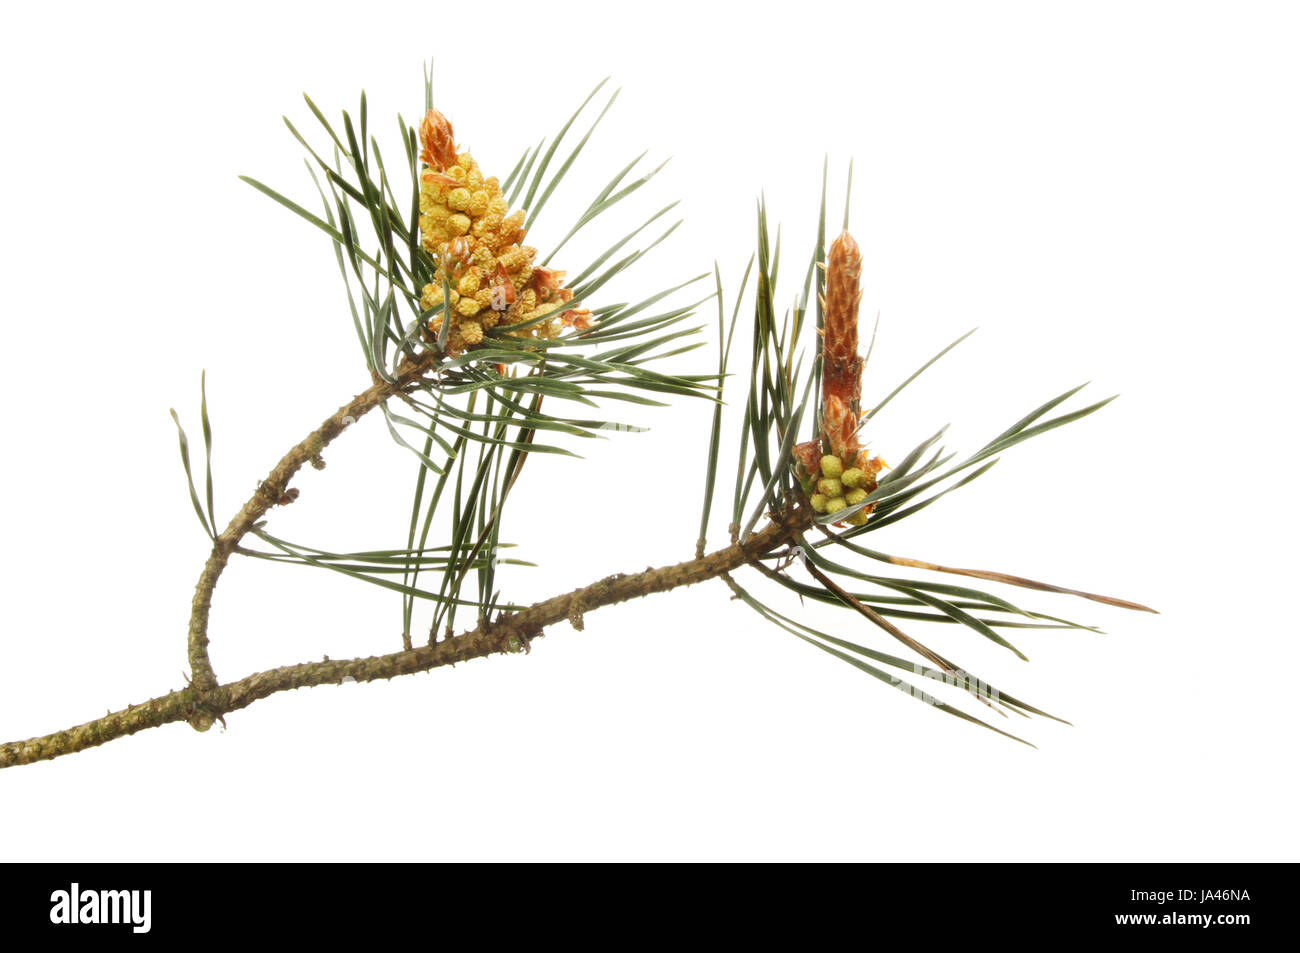 Conifer flowers and pine needles isolated against white - Stock Image